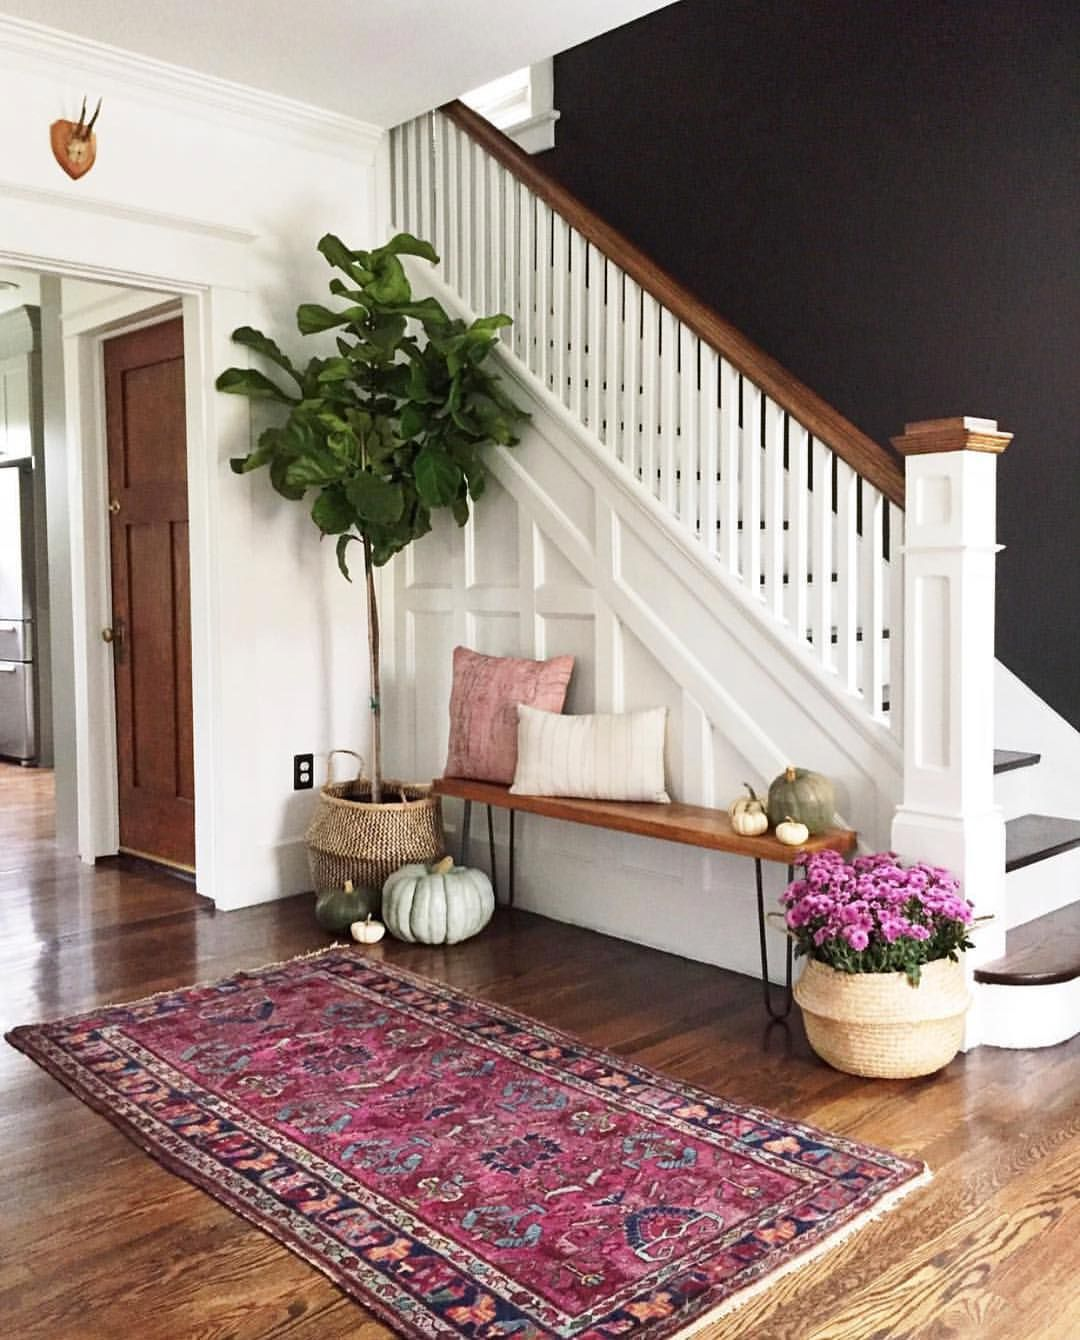 And this is just love the contrast carpendaughter beckiowensfeature   also best for our house images stairs basement rh pinterest